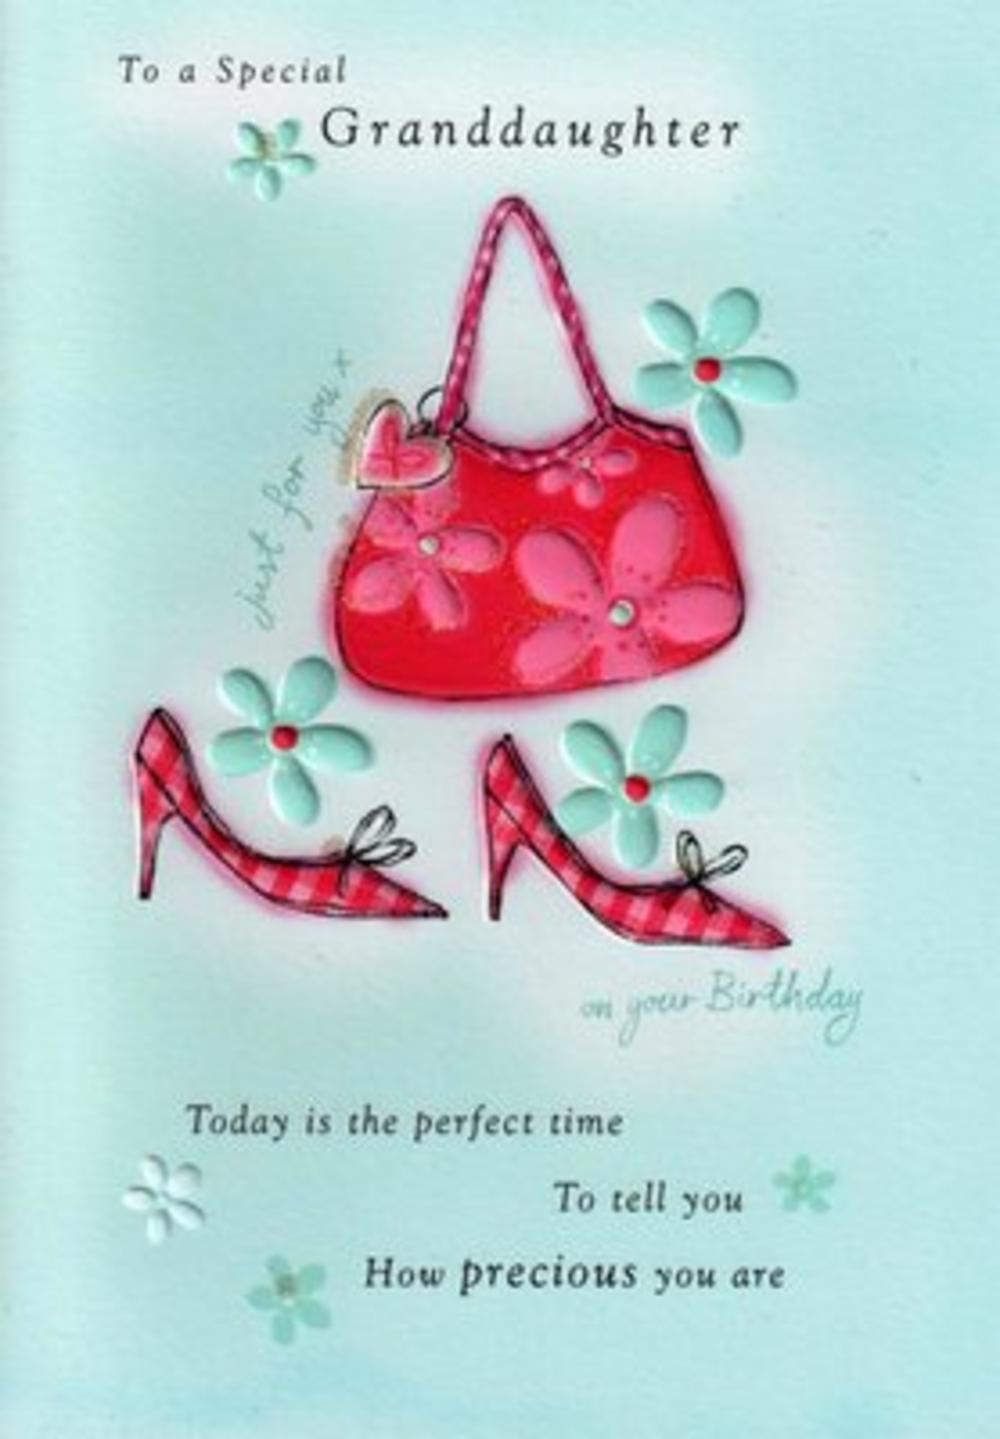 Granddaughter Birthday Poetry In Motion Card